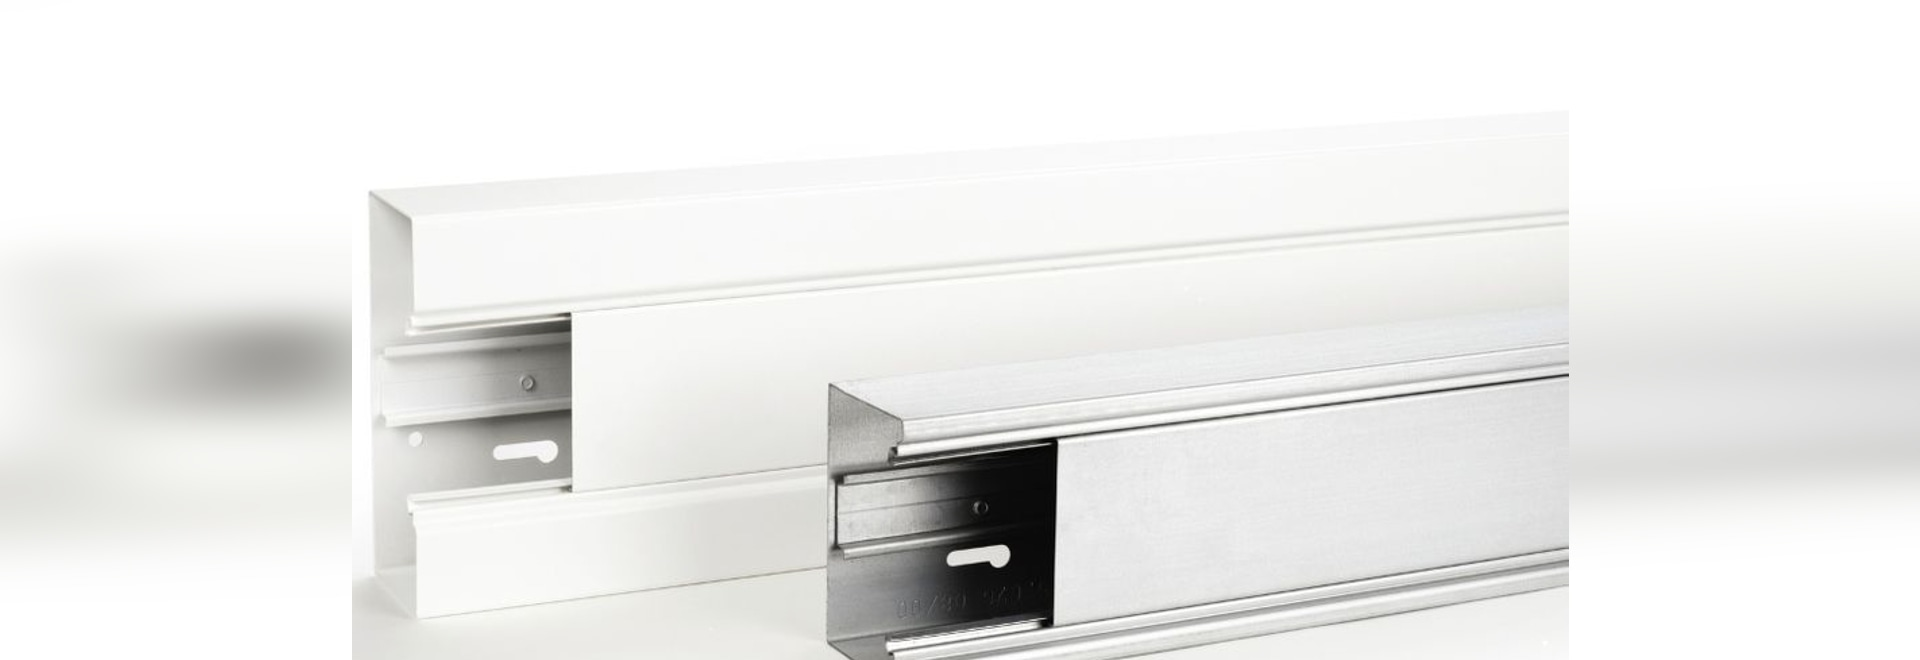 NEW: steel cable trunking by Rehau